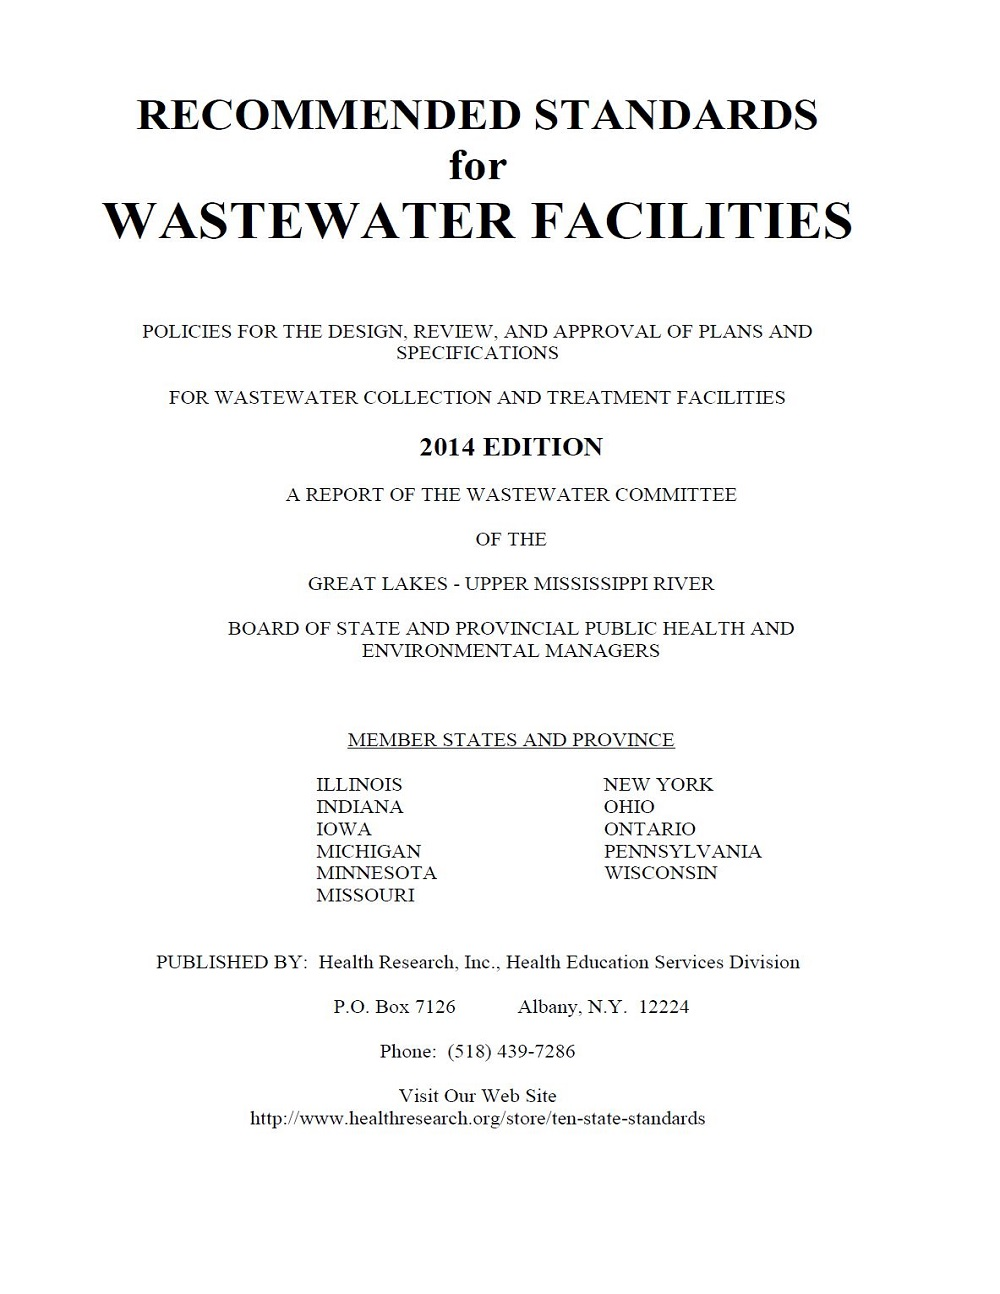 Recommended Standards for Wastewater Facilities